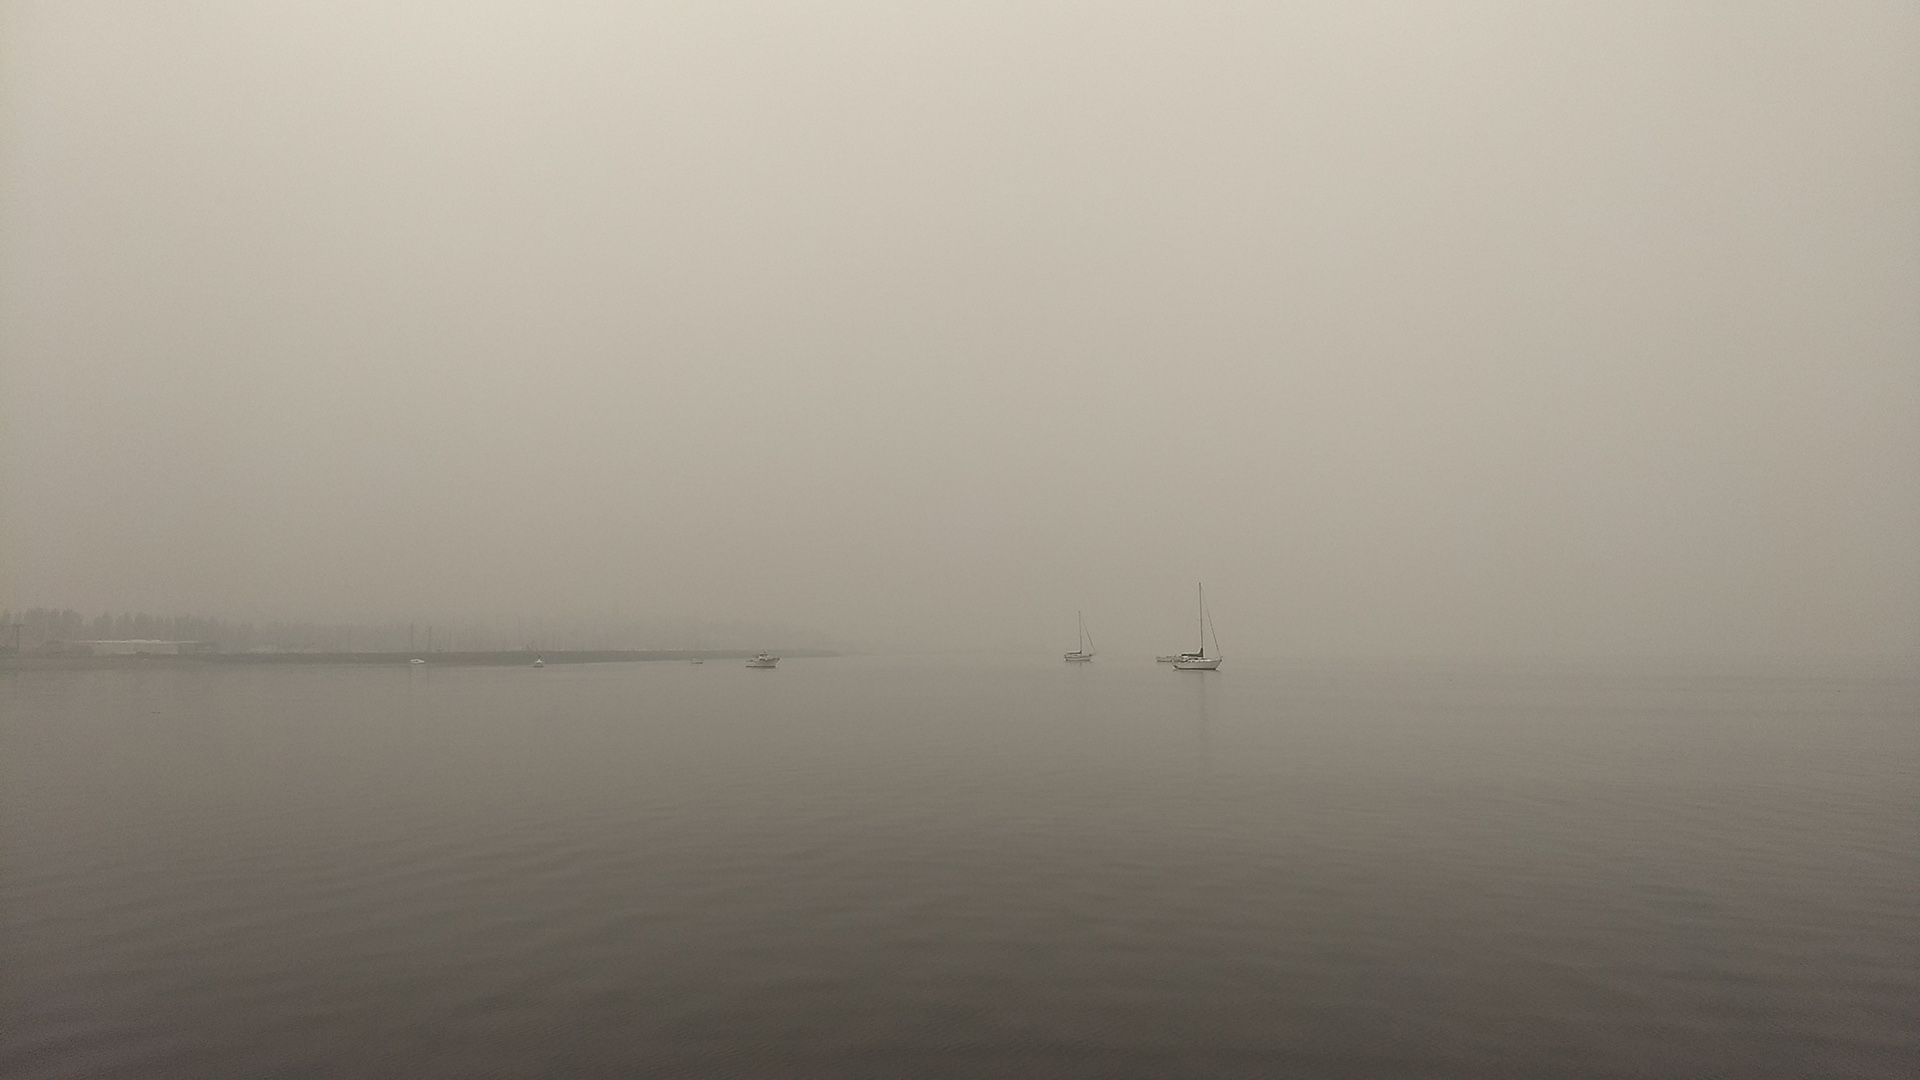 Some boats visible. The sky and water are gray. The shore is barely visible.